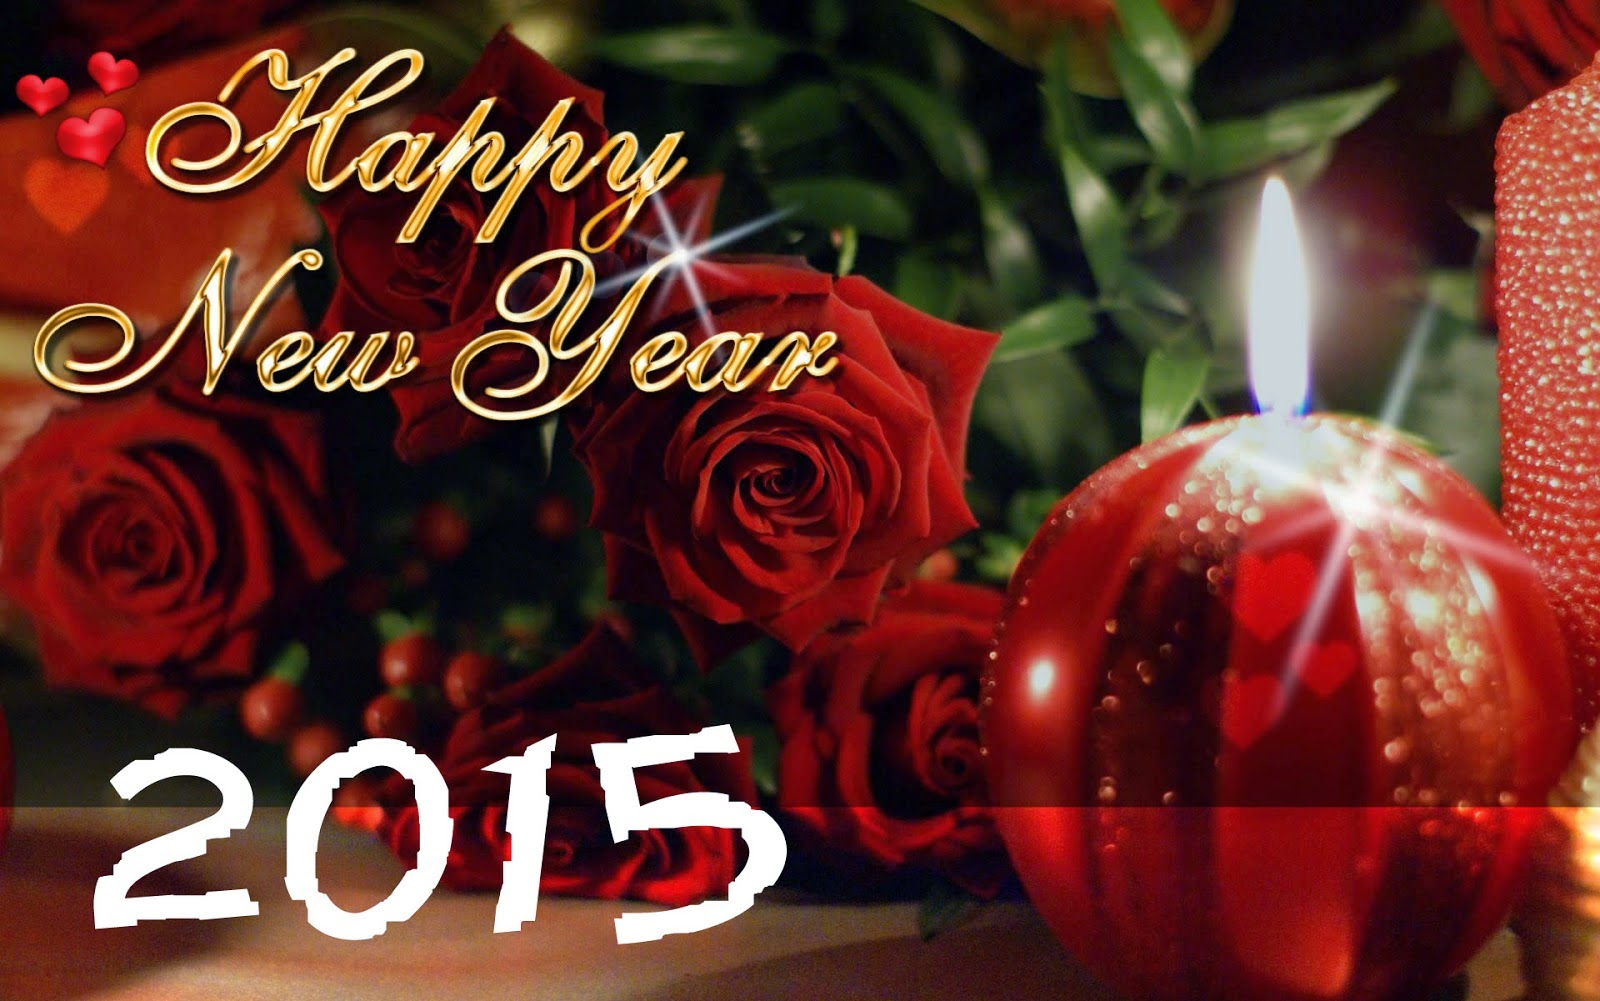 Happy New Year 2015 Wallpaper Love